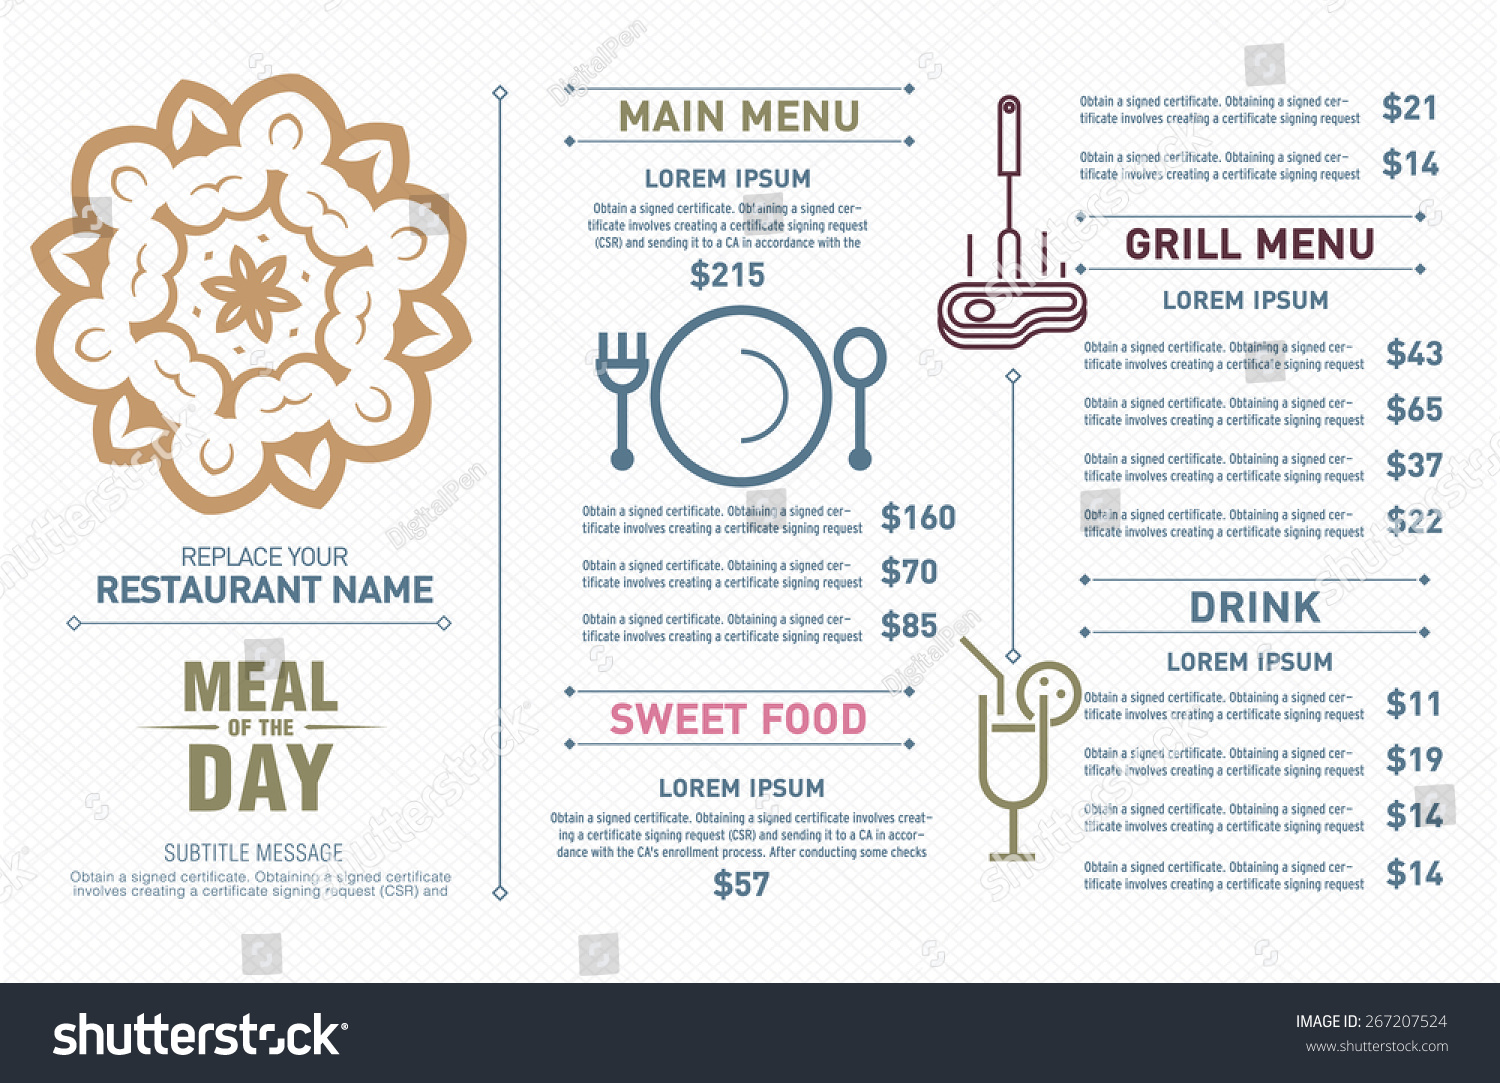 Restaurant Menu Design Hipster Style Free Stock Vector 2018